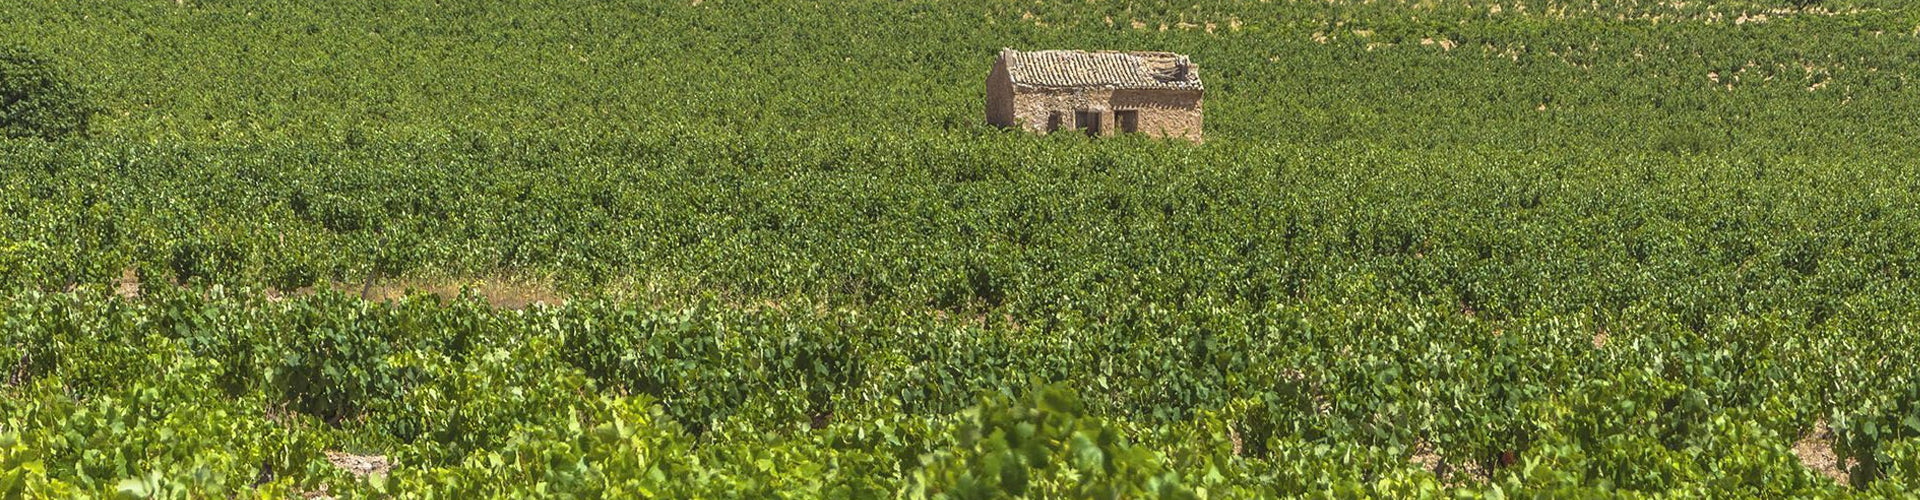 Finca Bacara Vineyards in Jumilla DOP Spain